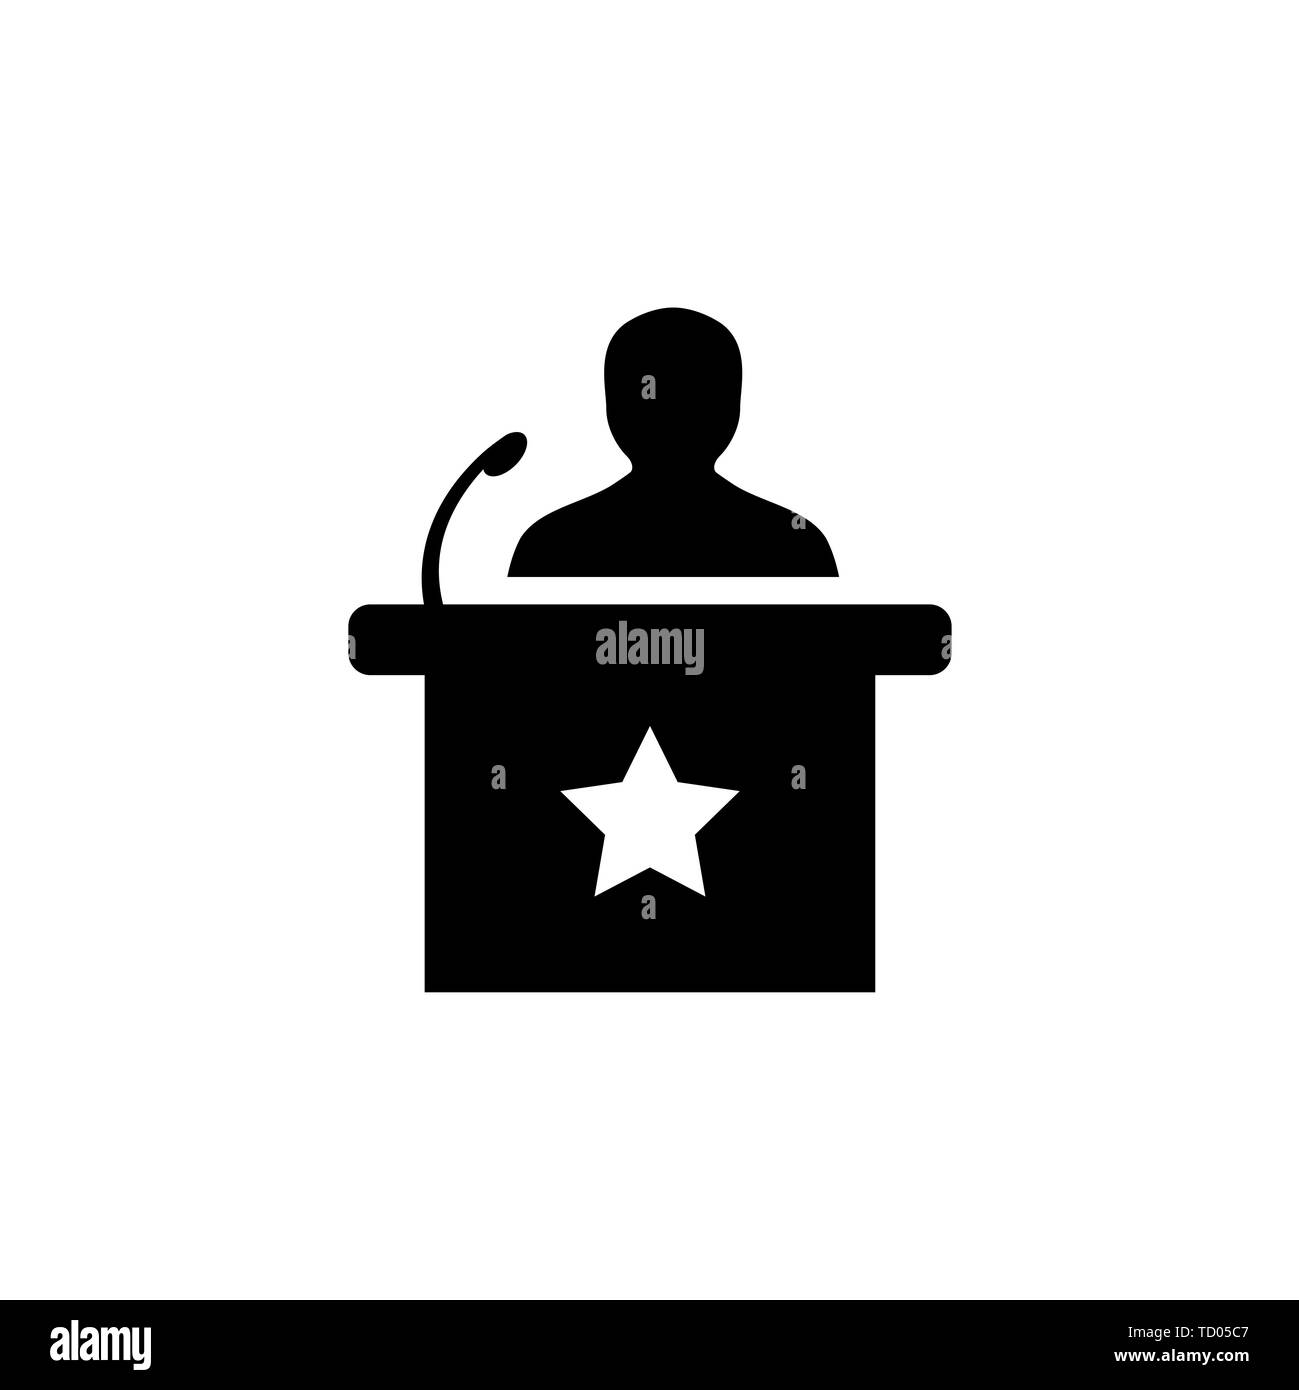 Speaker Icon In Flat Style Vector Icon For Apps And Websites. Black Icon. Vector Illustration. - Stock Image